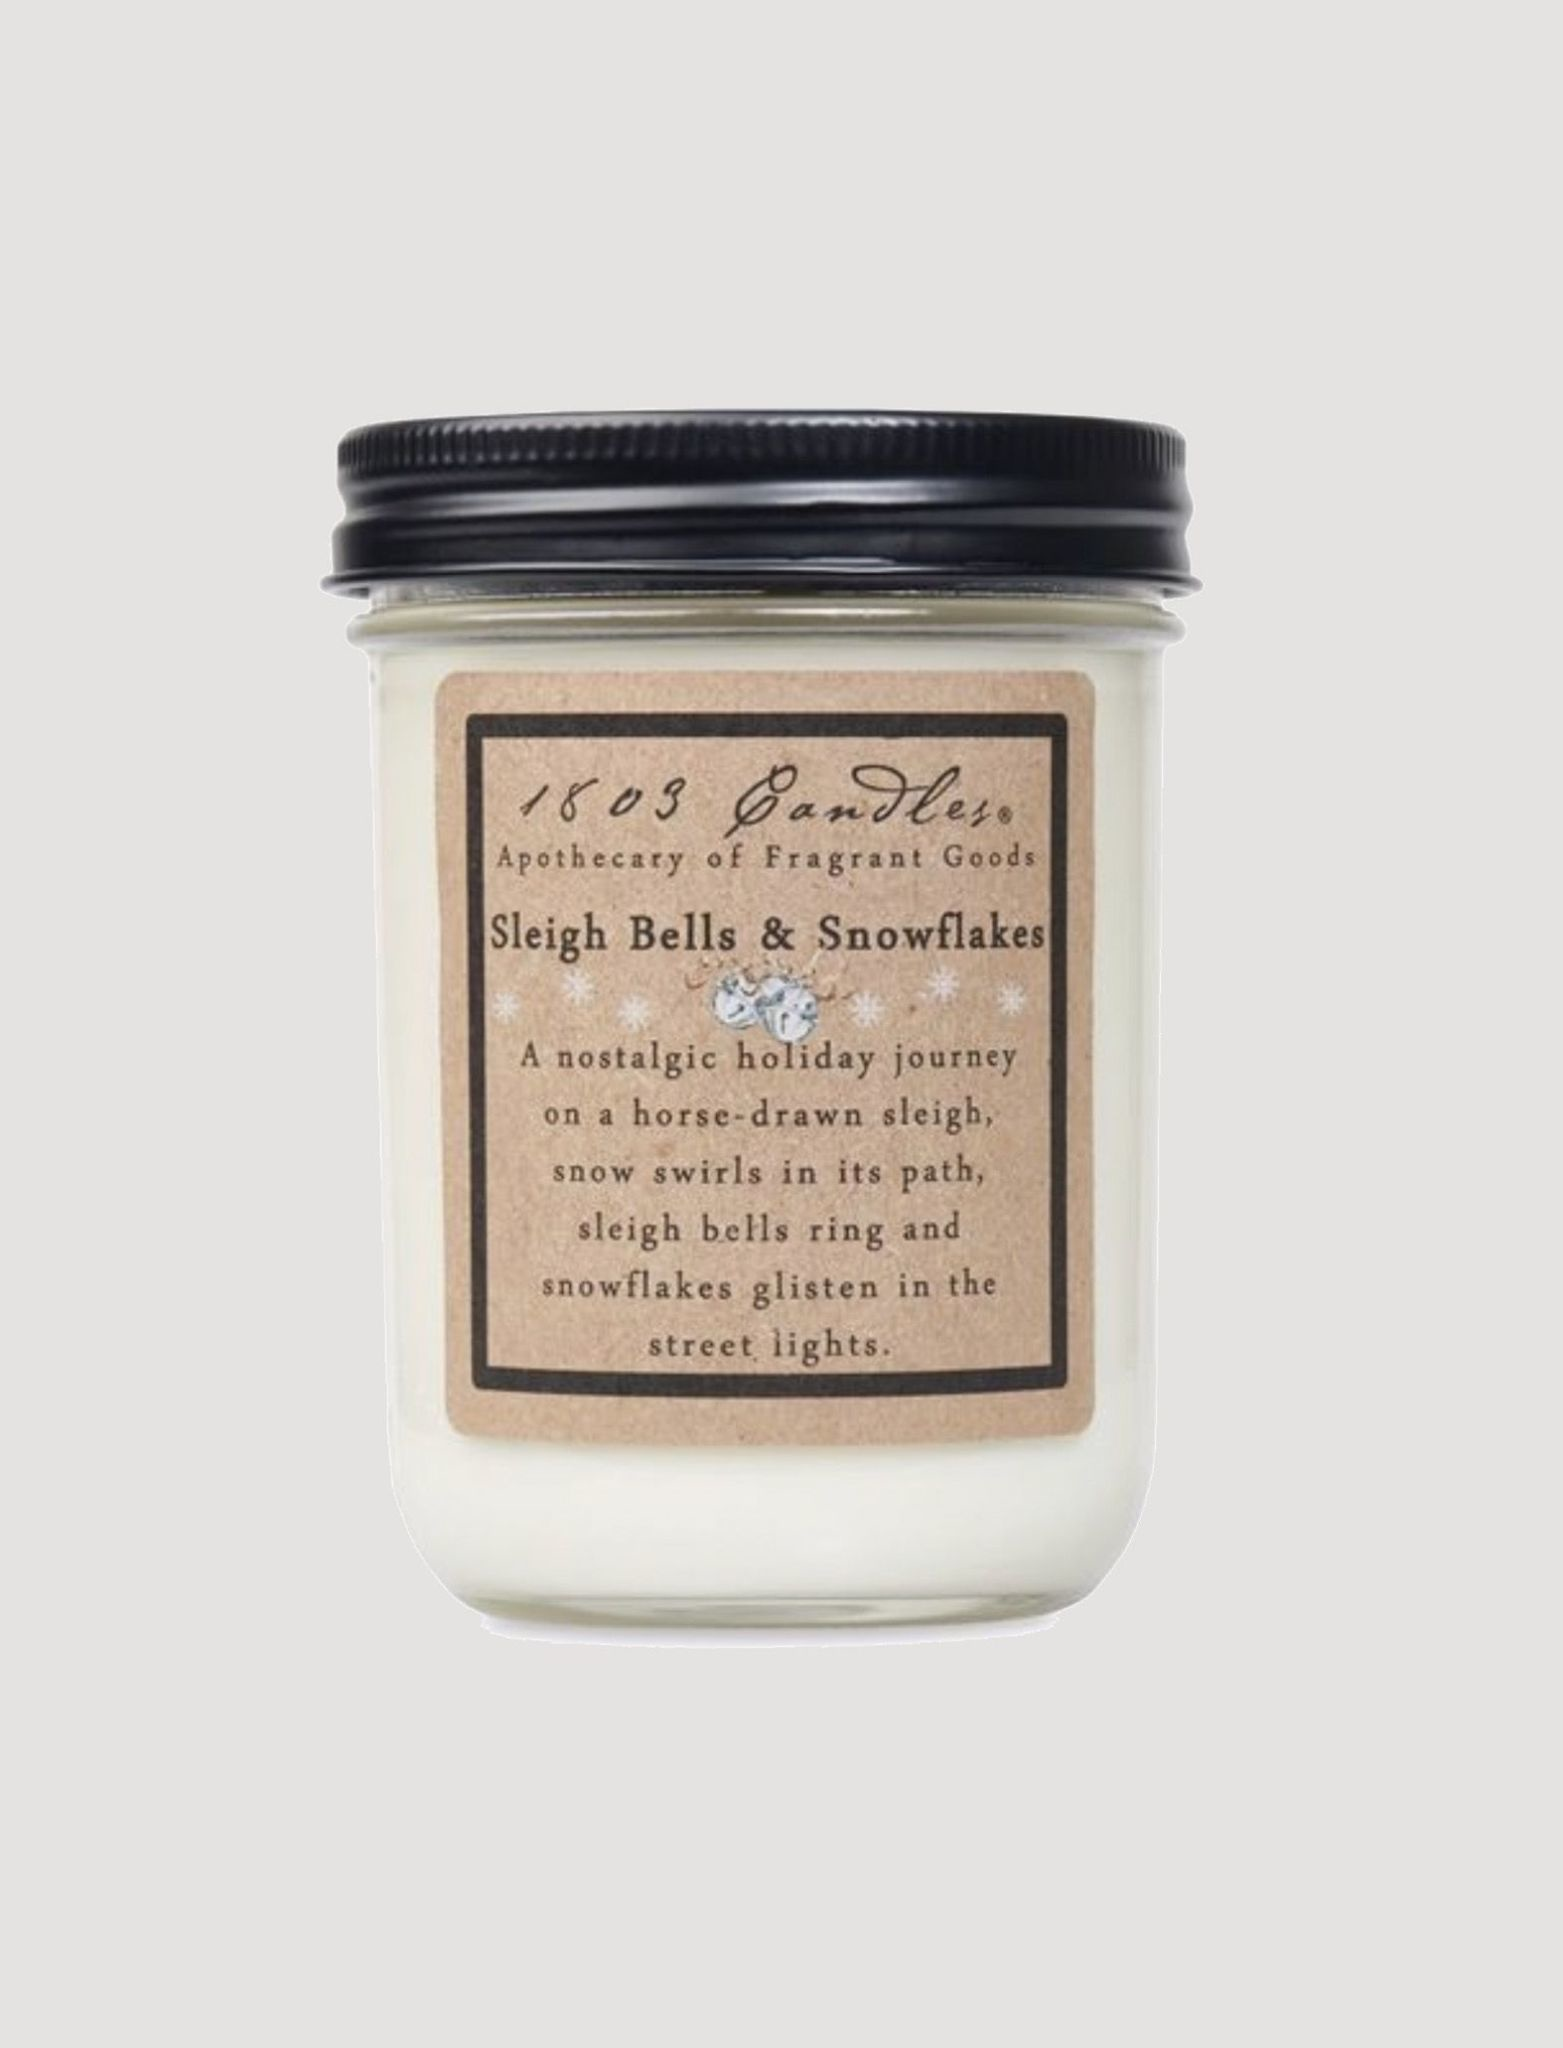 1803 Candles 1803 Sleighbells & Snowflakes Candle